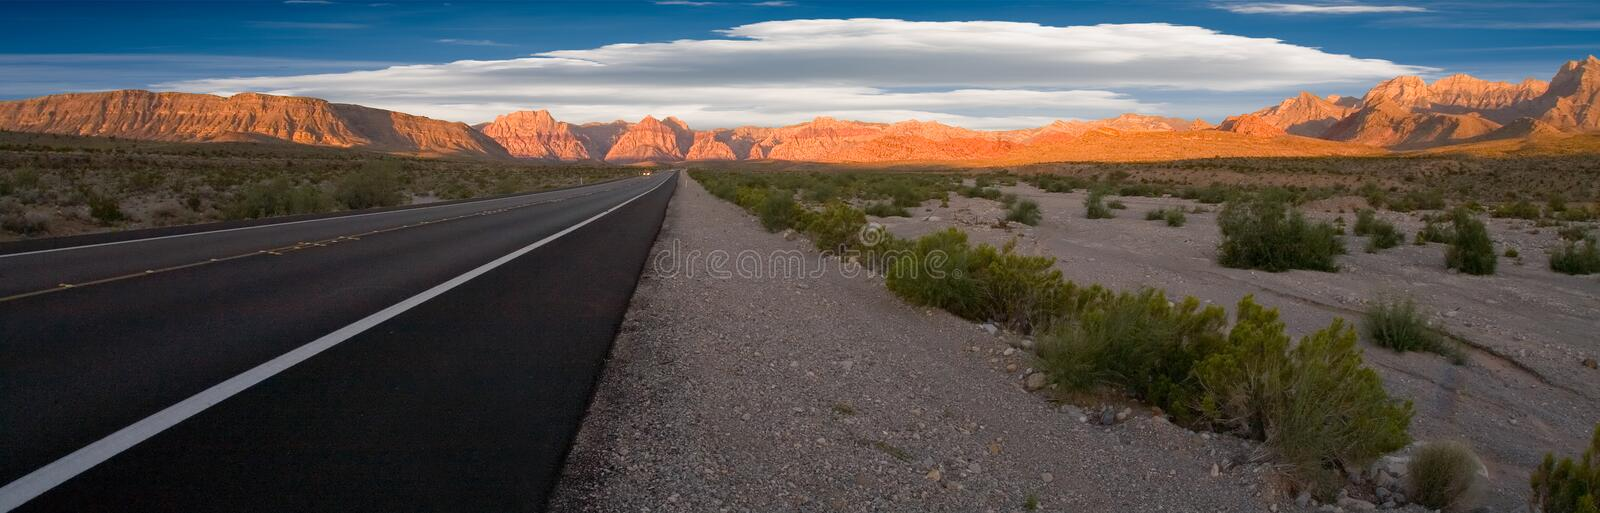 Road to Red Rock Canyon. The road to Red Rock Canyon, Nevada early in the morning with the mountains in the background royalty free stock photography